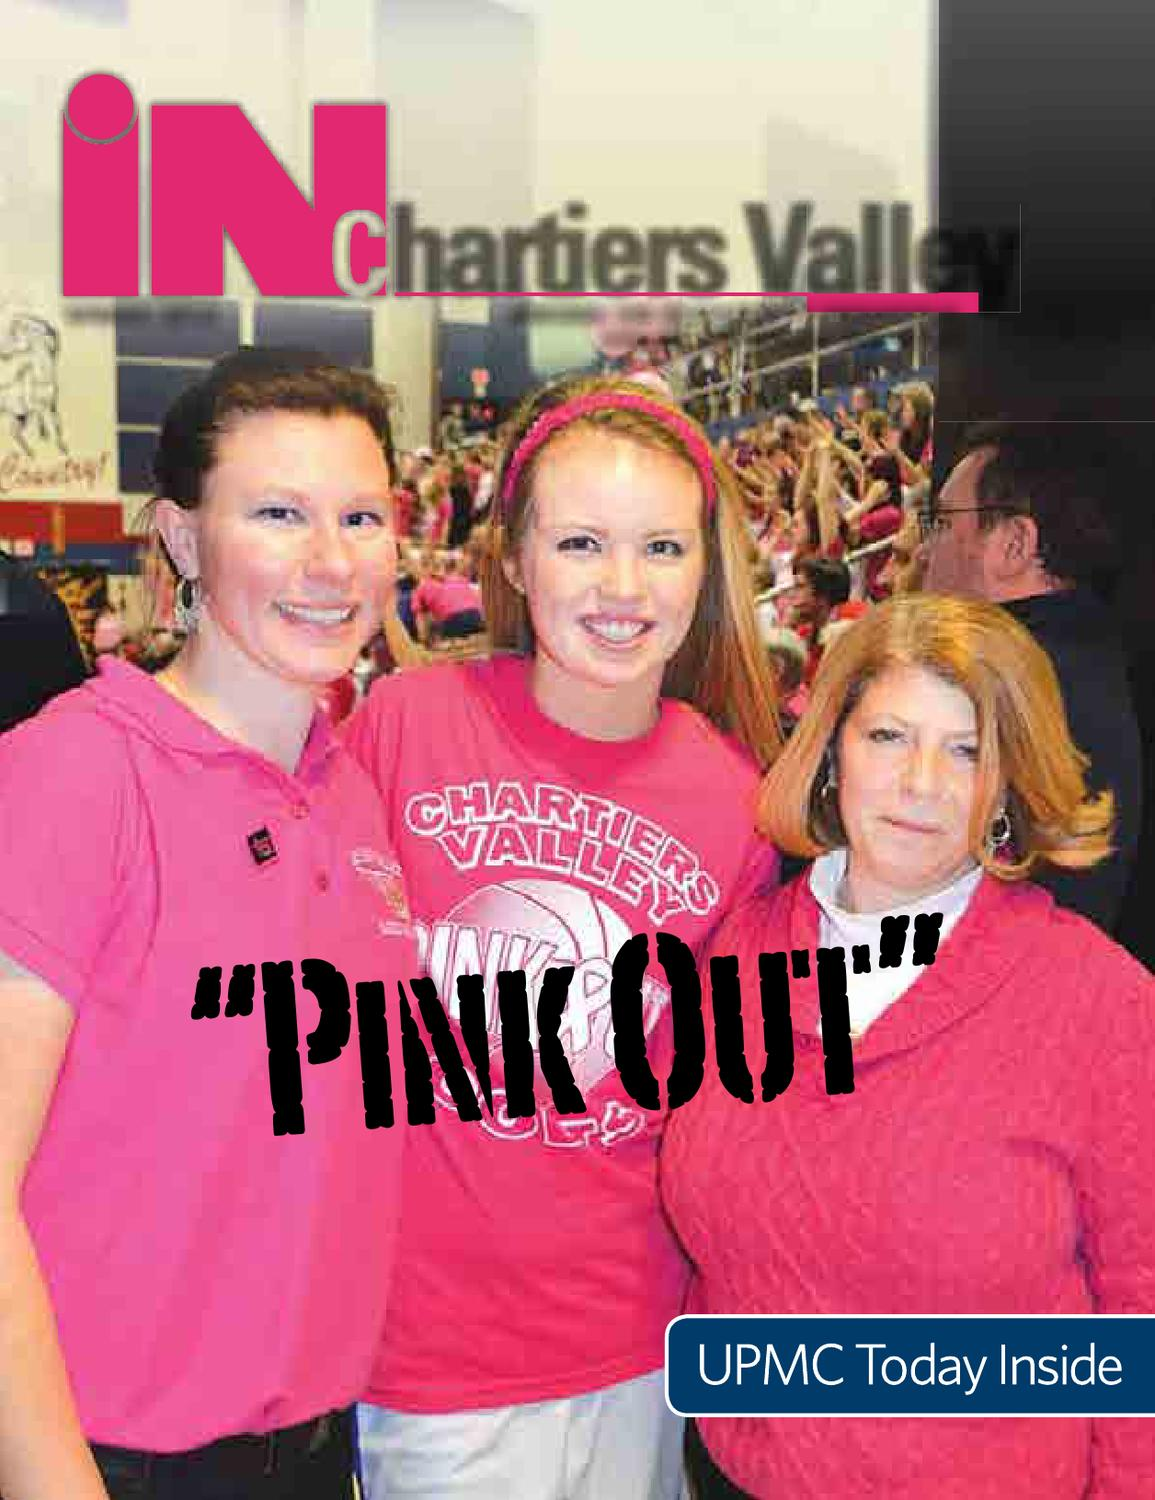 In Chartiers Valley Spring By In Community Magazines Issuu